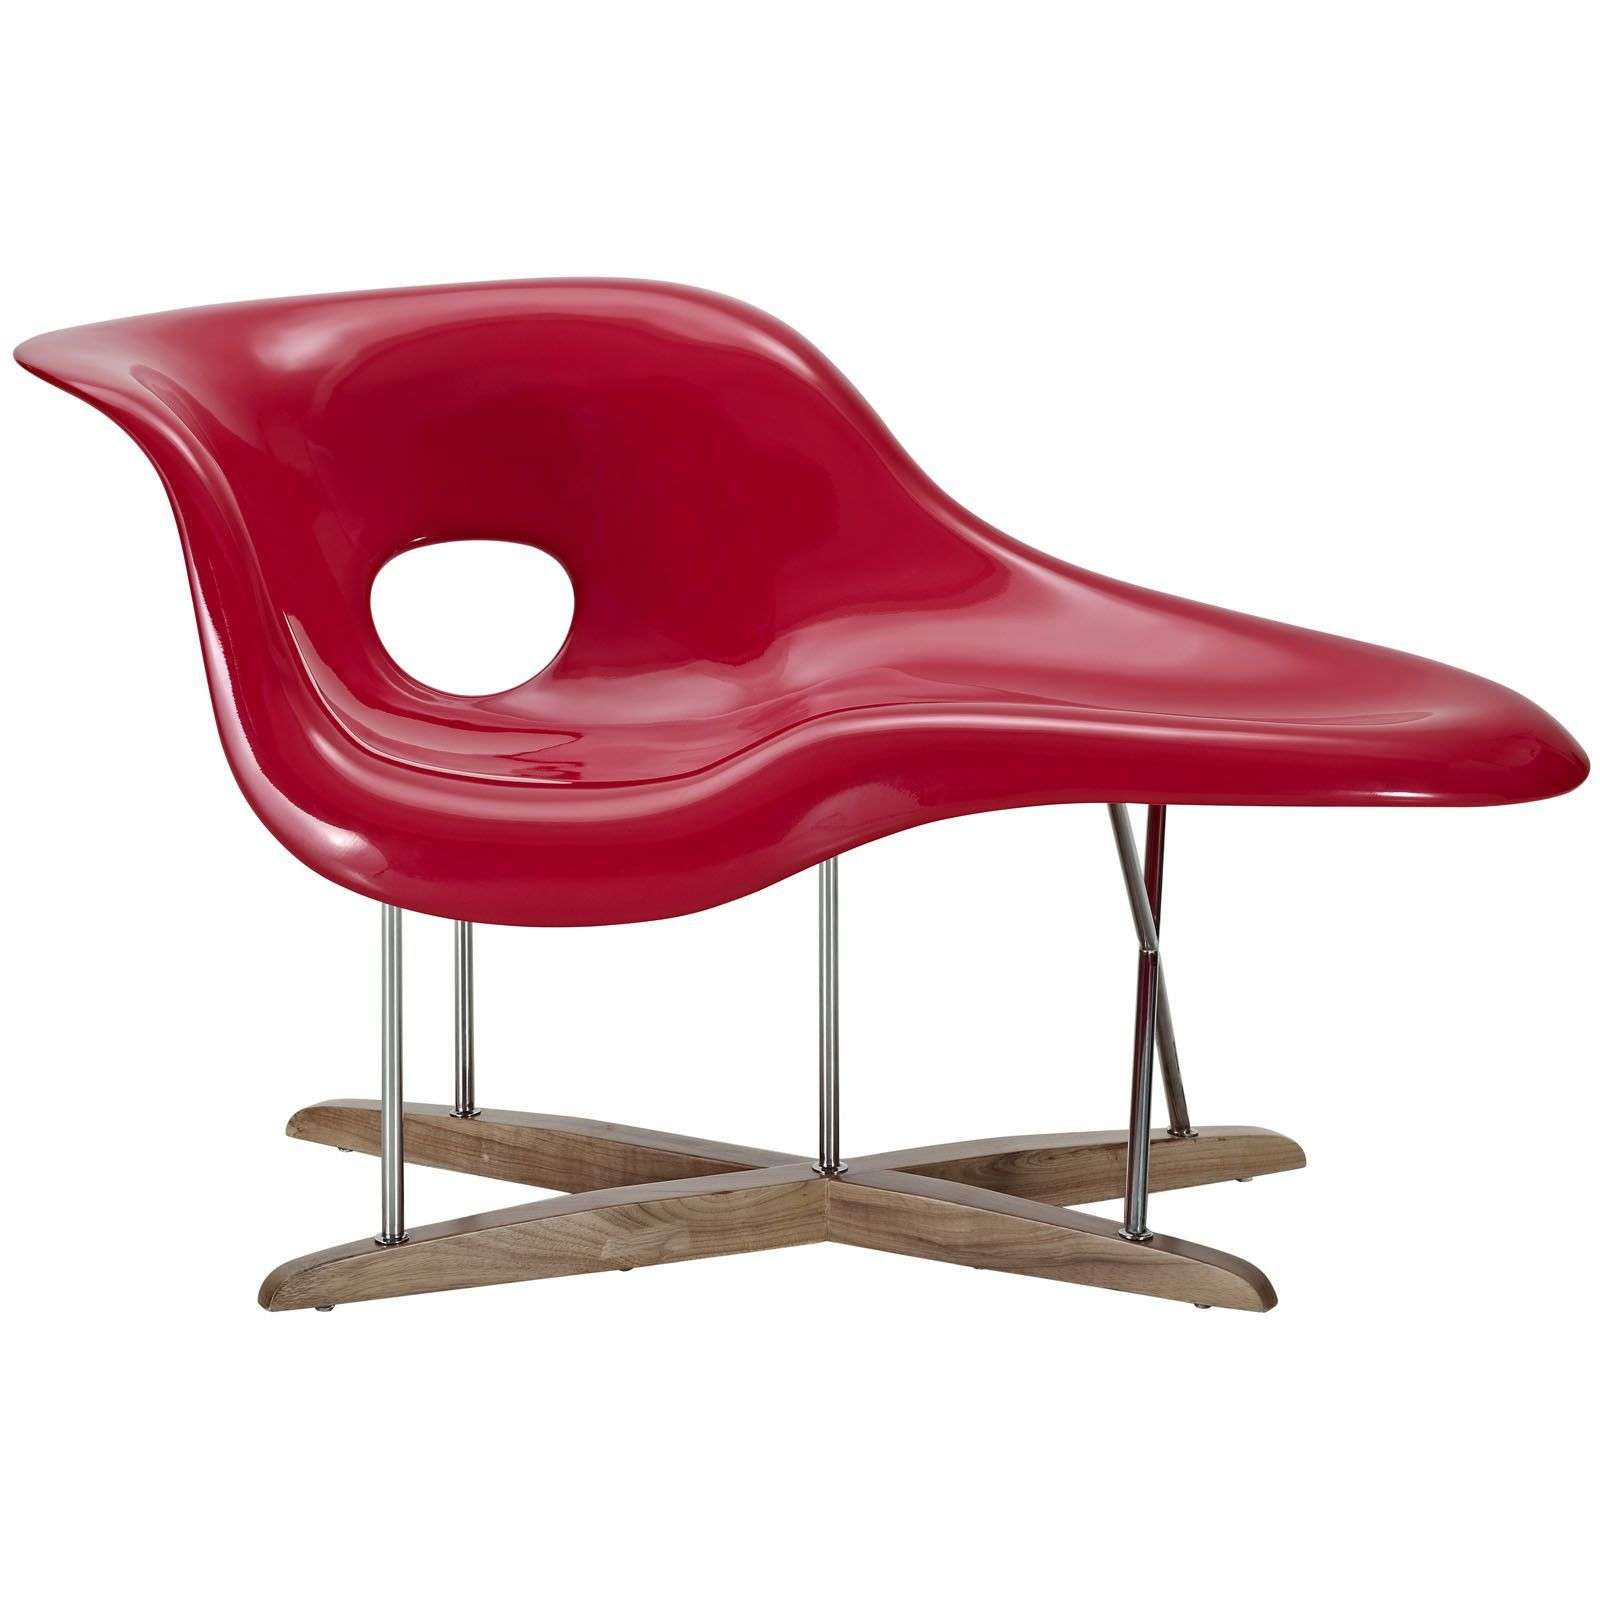 Amazing Eames La Chaise Reproduction Charles Eames Chair Modern Ibusinesslaw Wood Chair Design Ideas Ibusinesslaworg